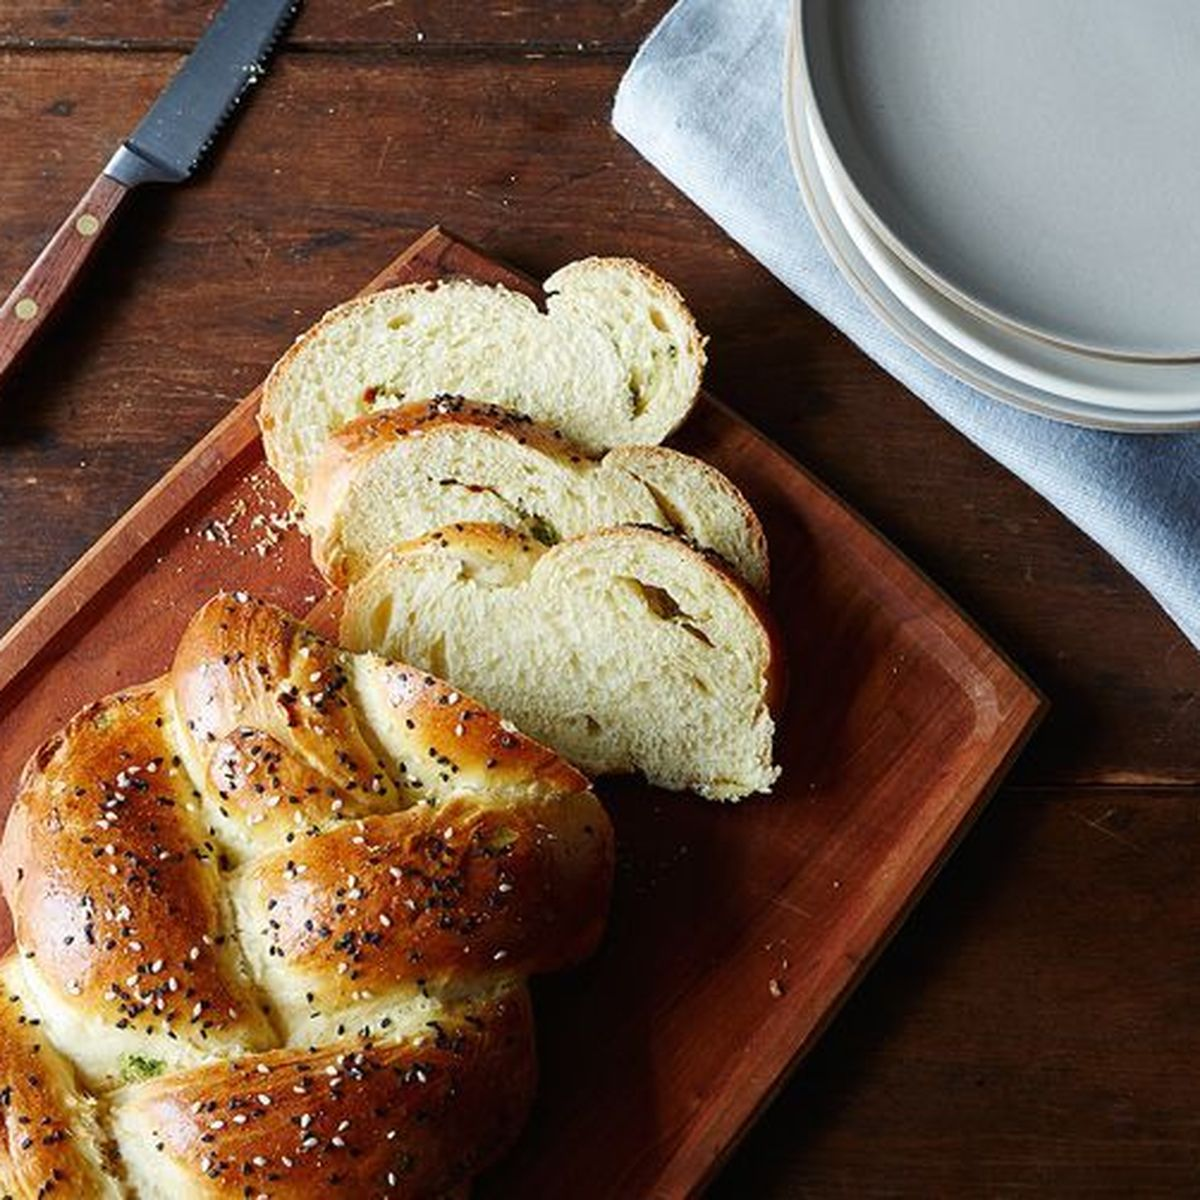 For More Exciting Challah Treat It Like Babka Sweet Or Savory